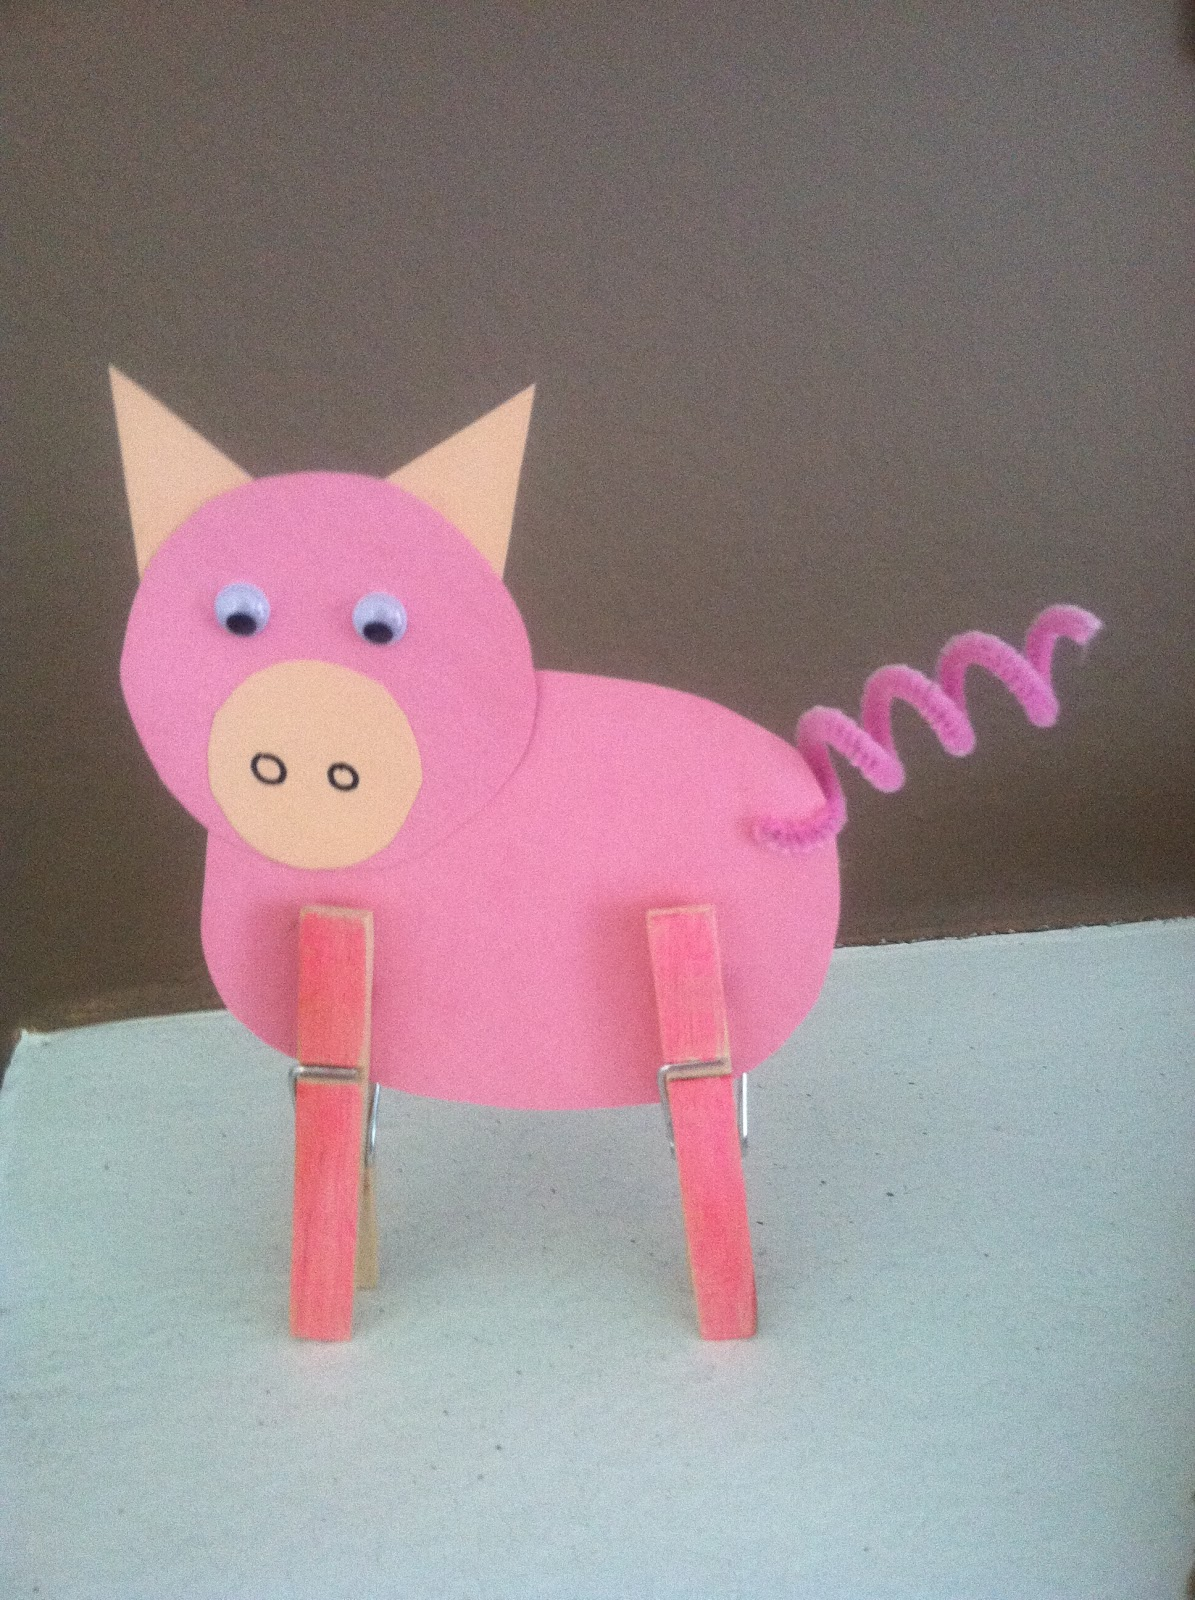 Serendipitous discovery mrs blair 39 s pig pen for Crafts for little kids